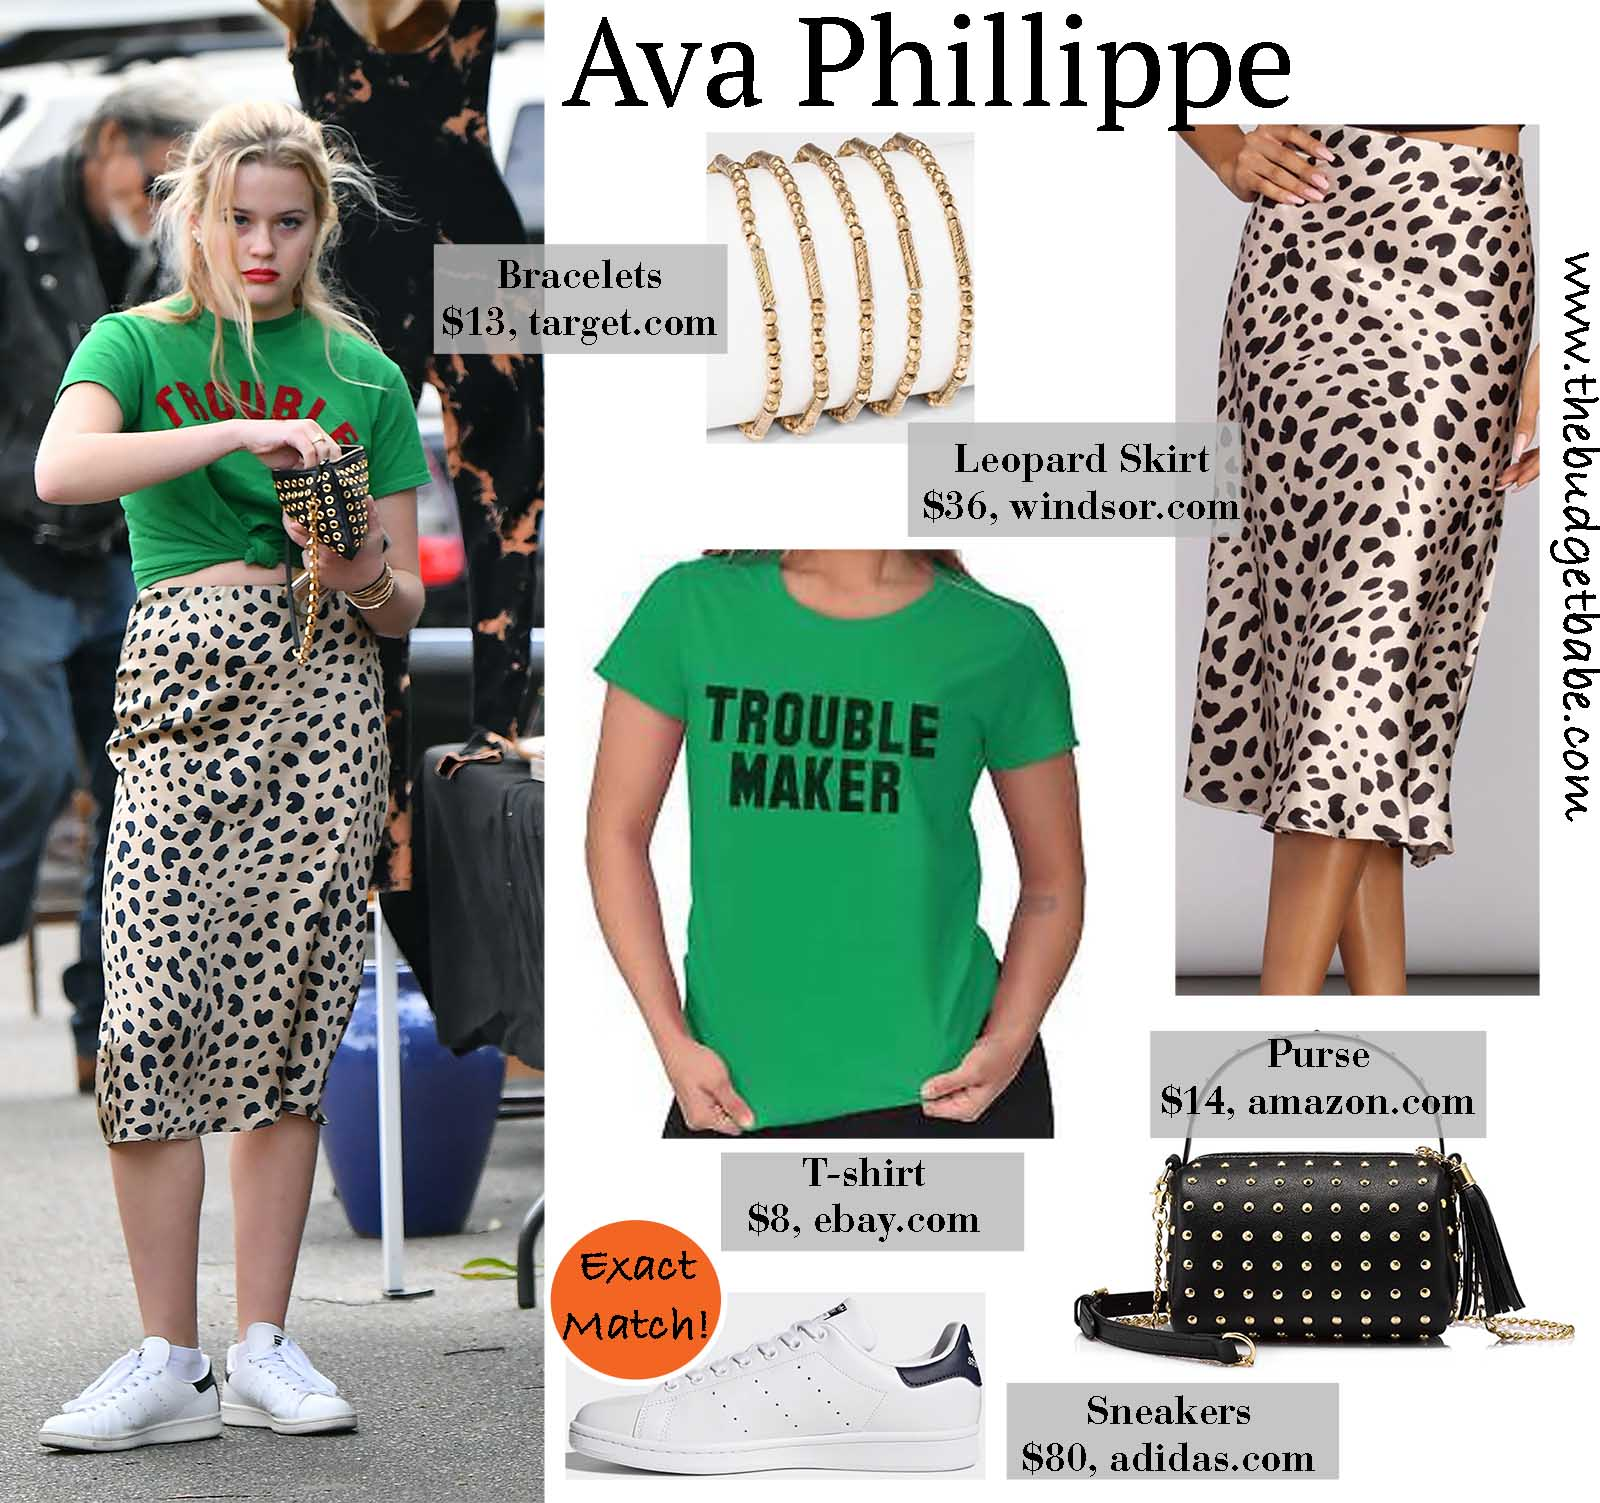 Ava Phillippe switches up her casual look with a satin leopard midi skirt!